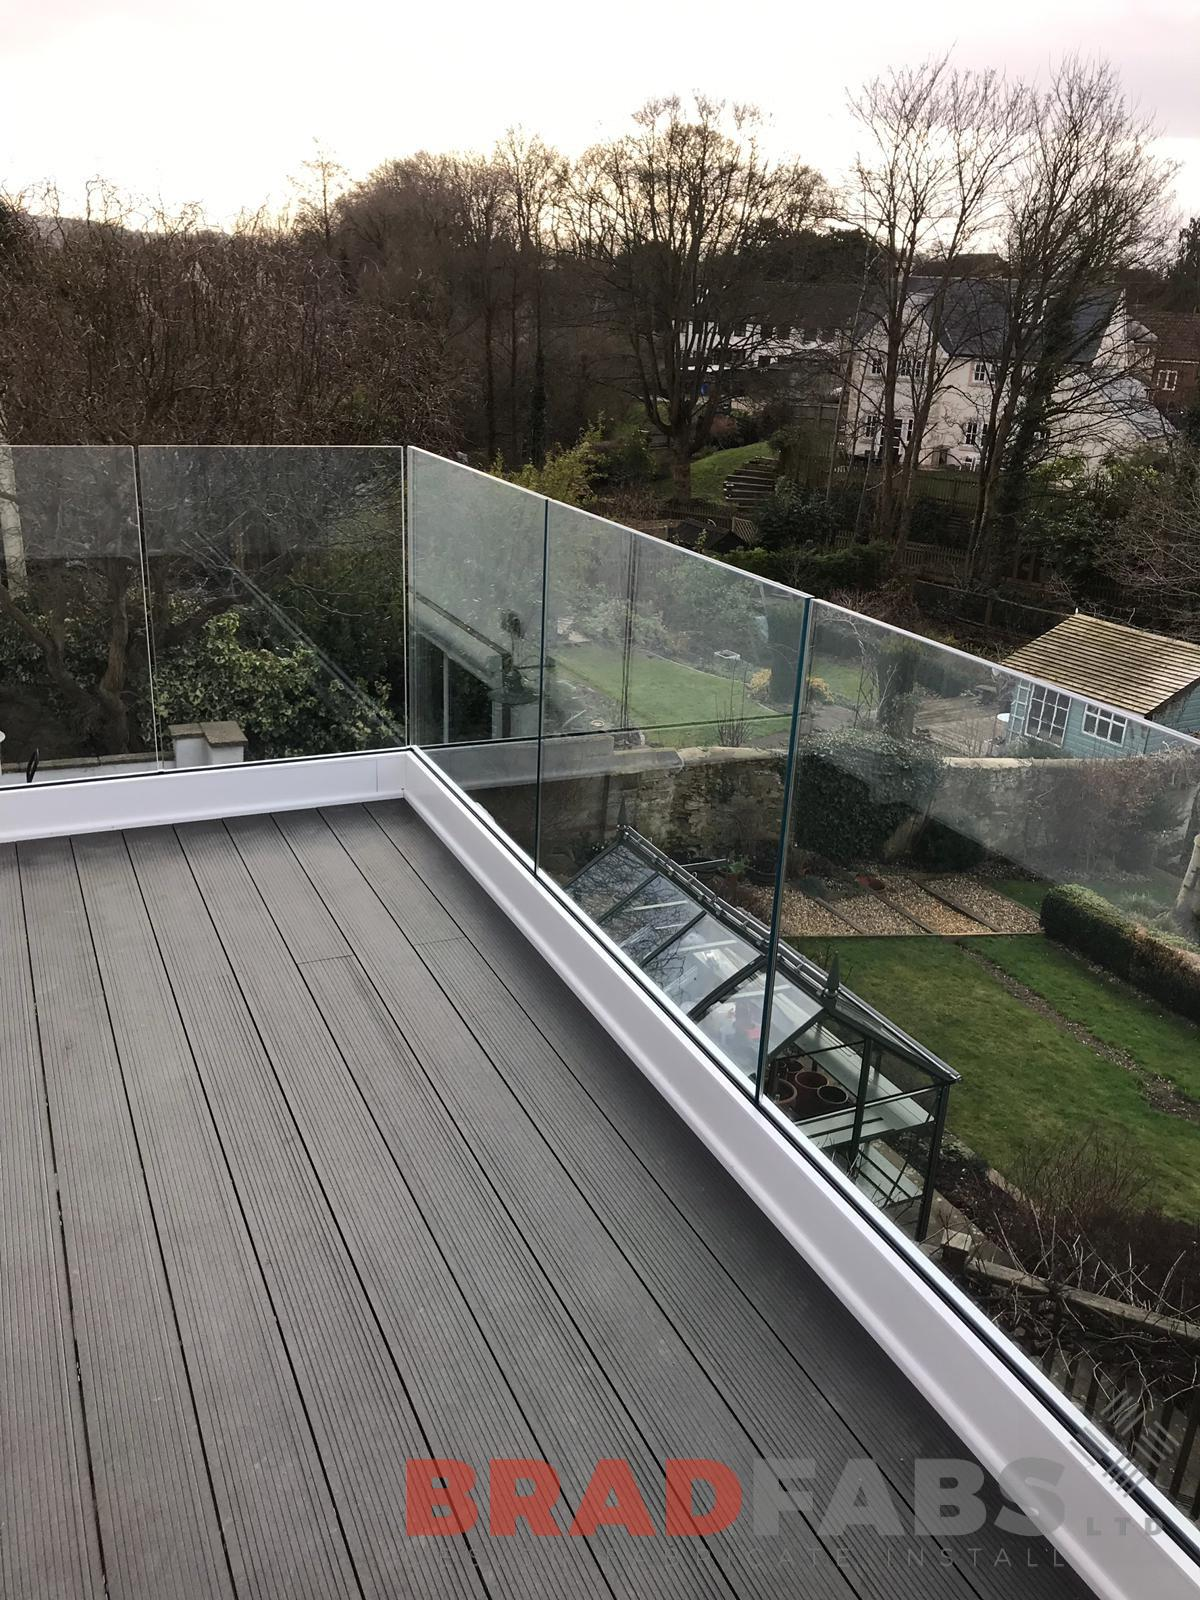 Stunning balcony with infinity glass balustrade and composite decked flooring, in mild steel, galvanised and powder coated by Bradfabs